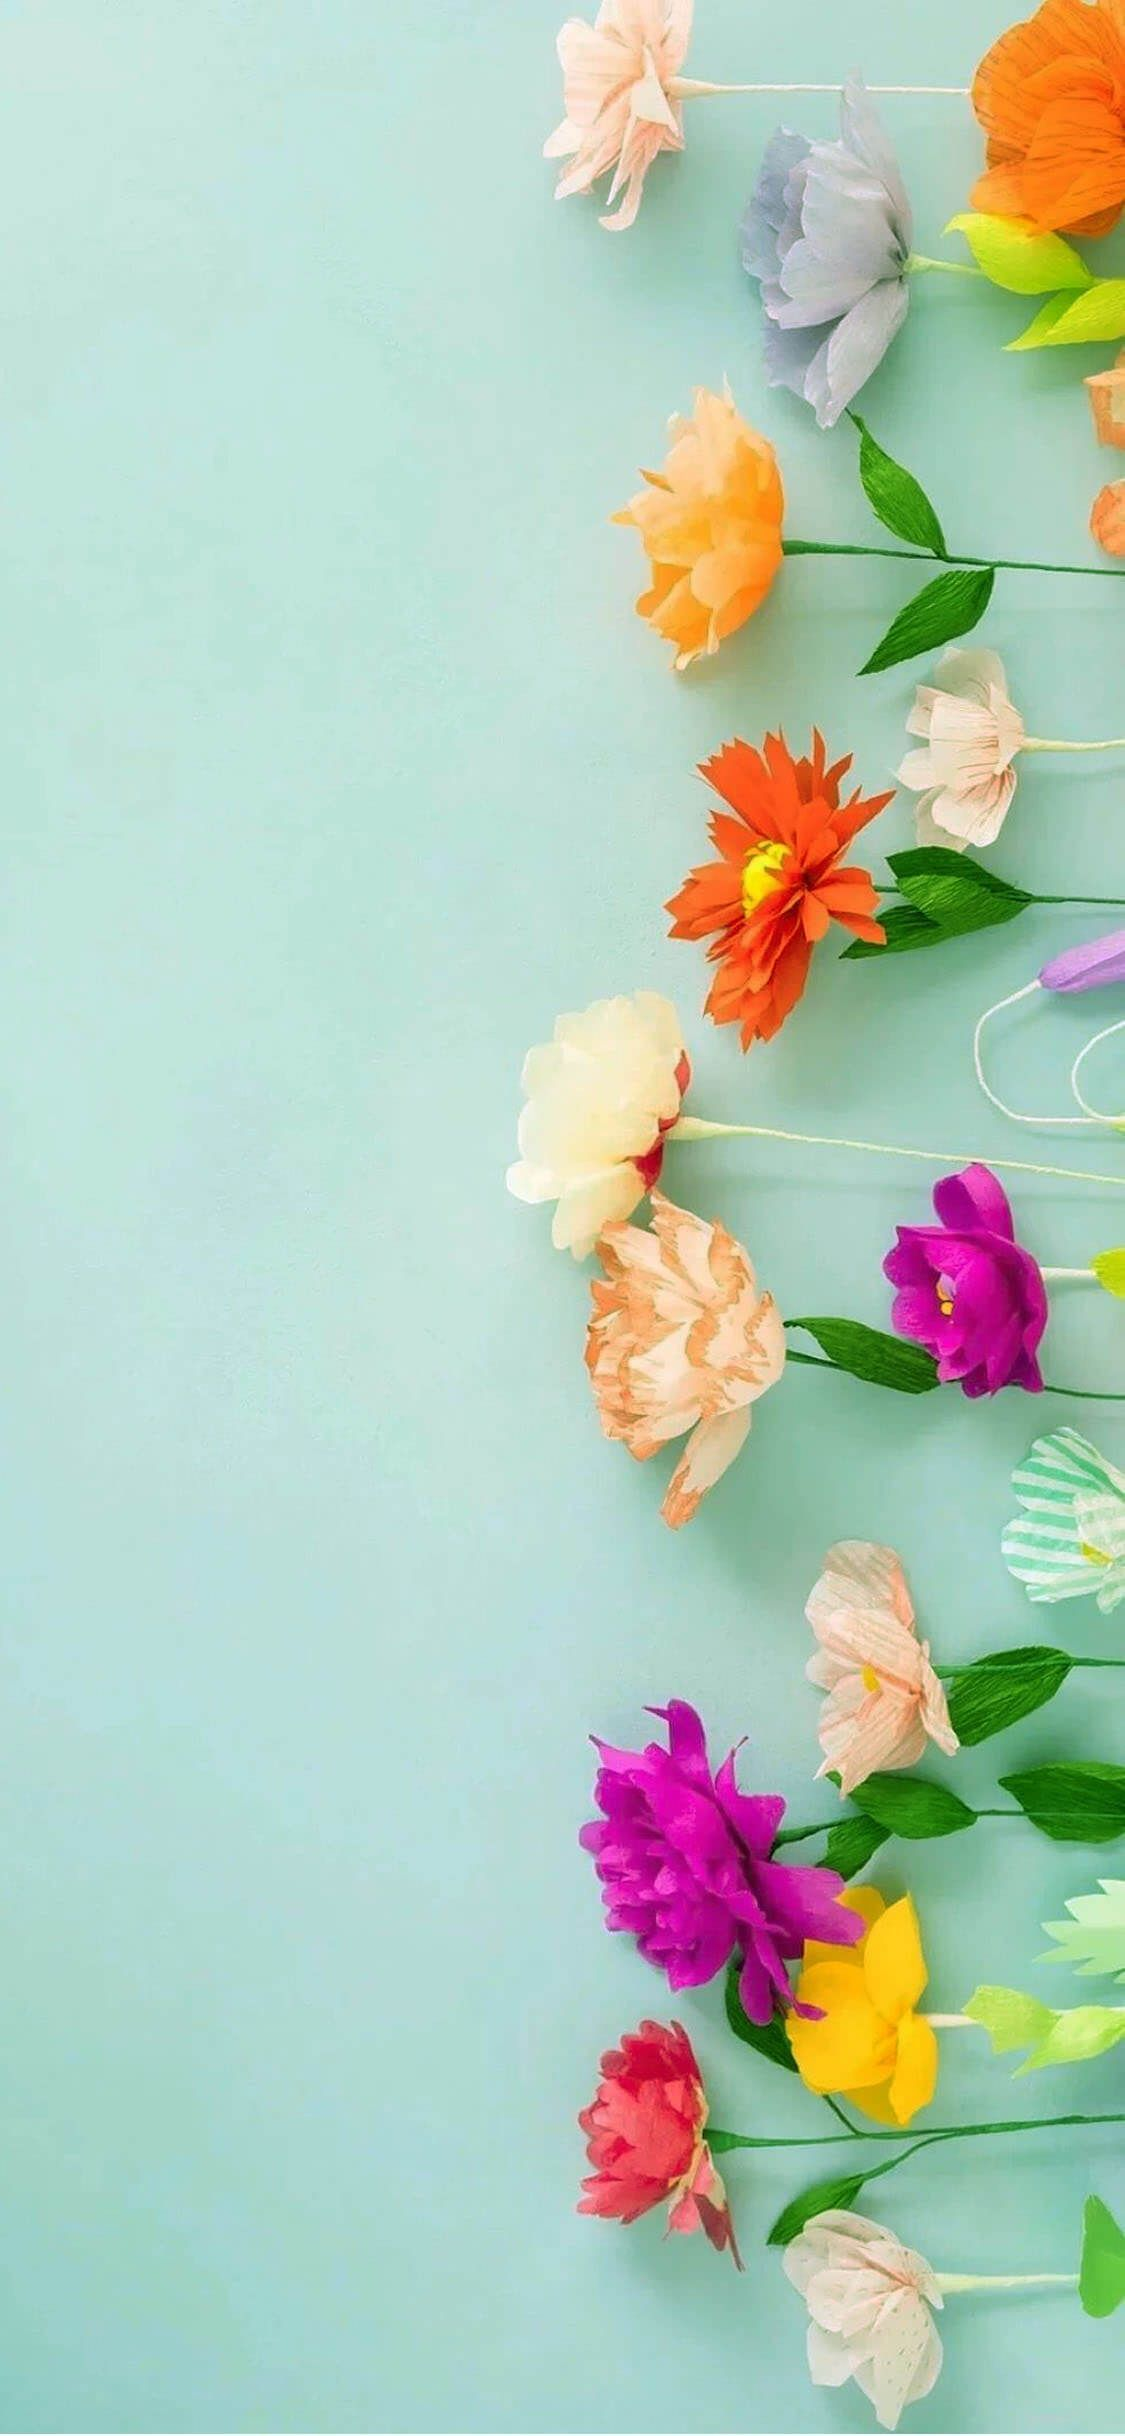 aesthetic 3d flower iphone wallpapers